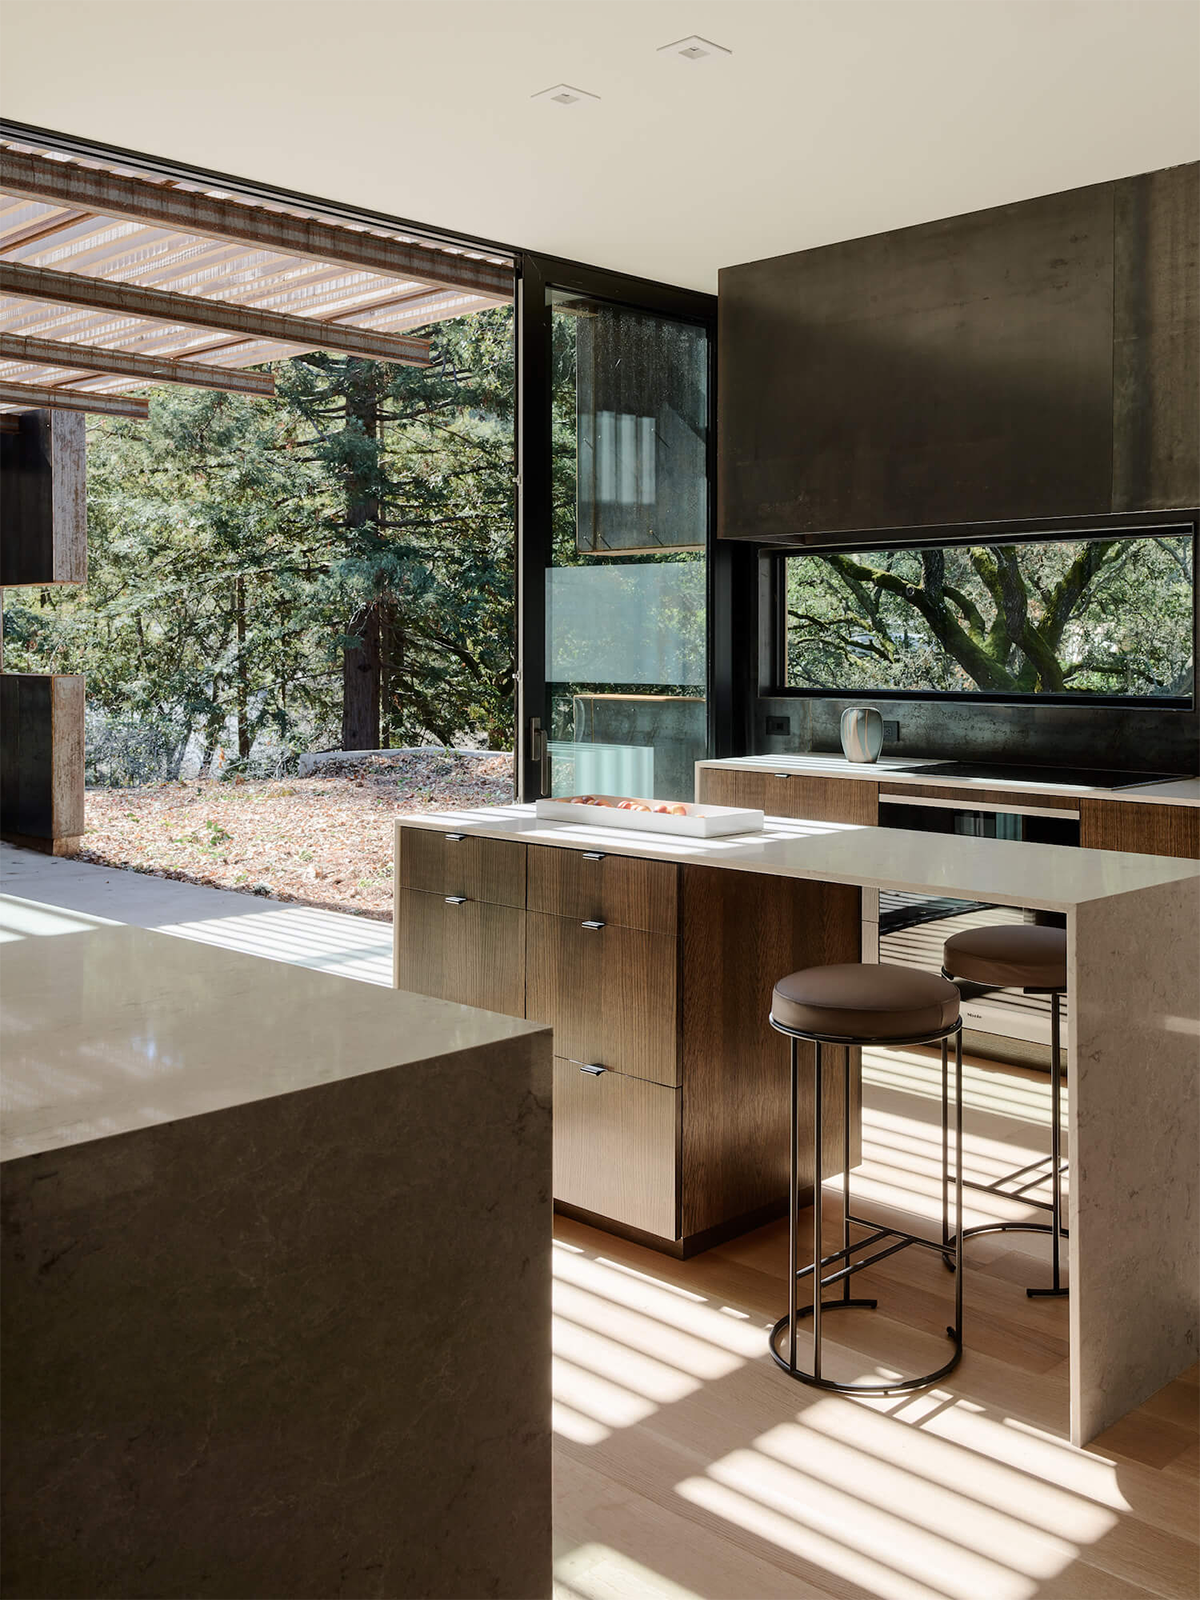 Miner Road by Faulkner Architects 7.png